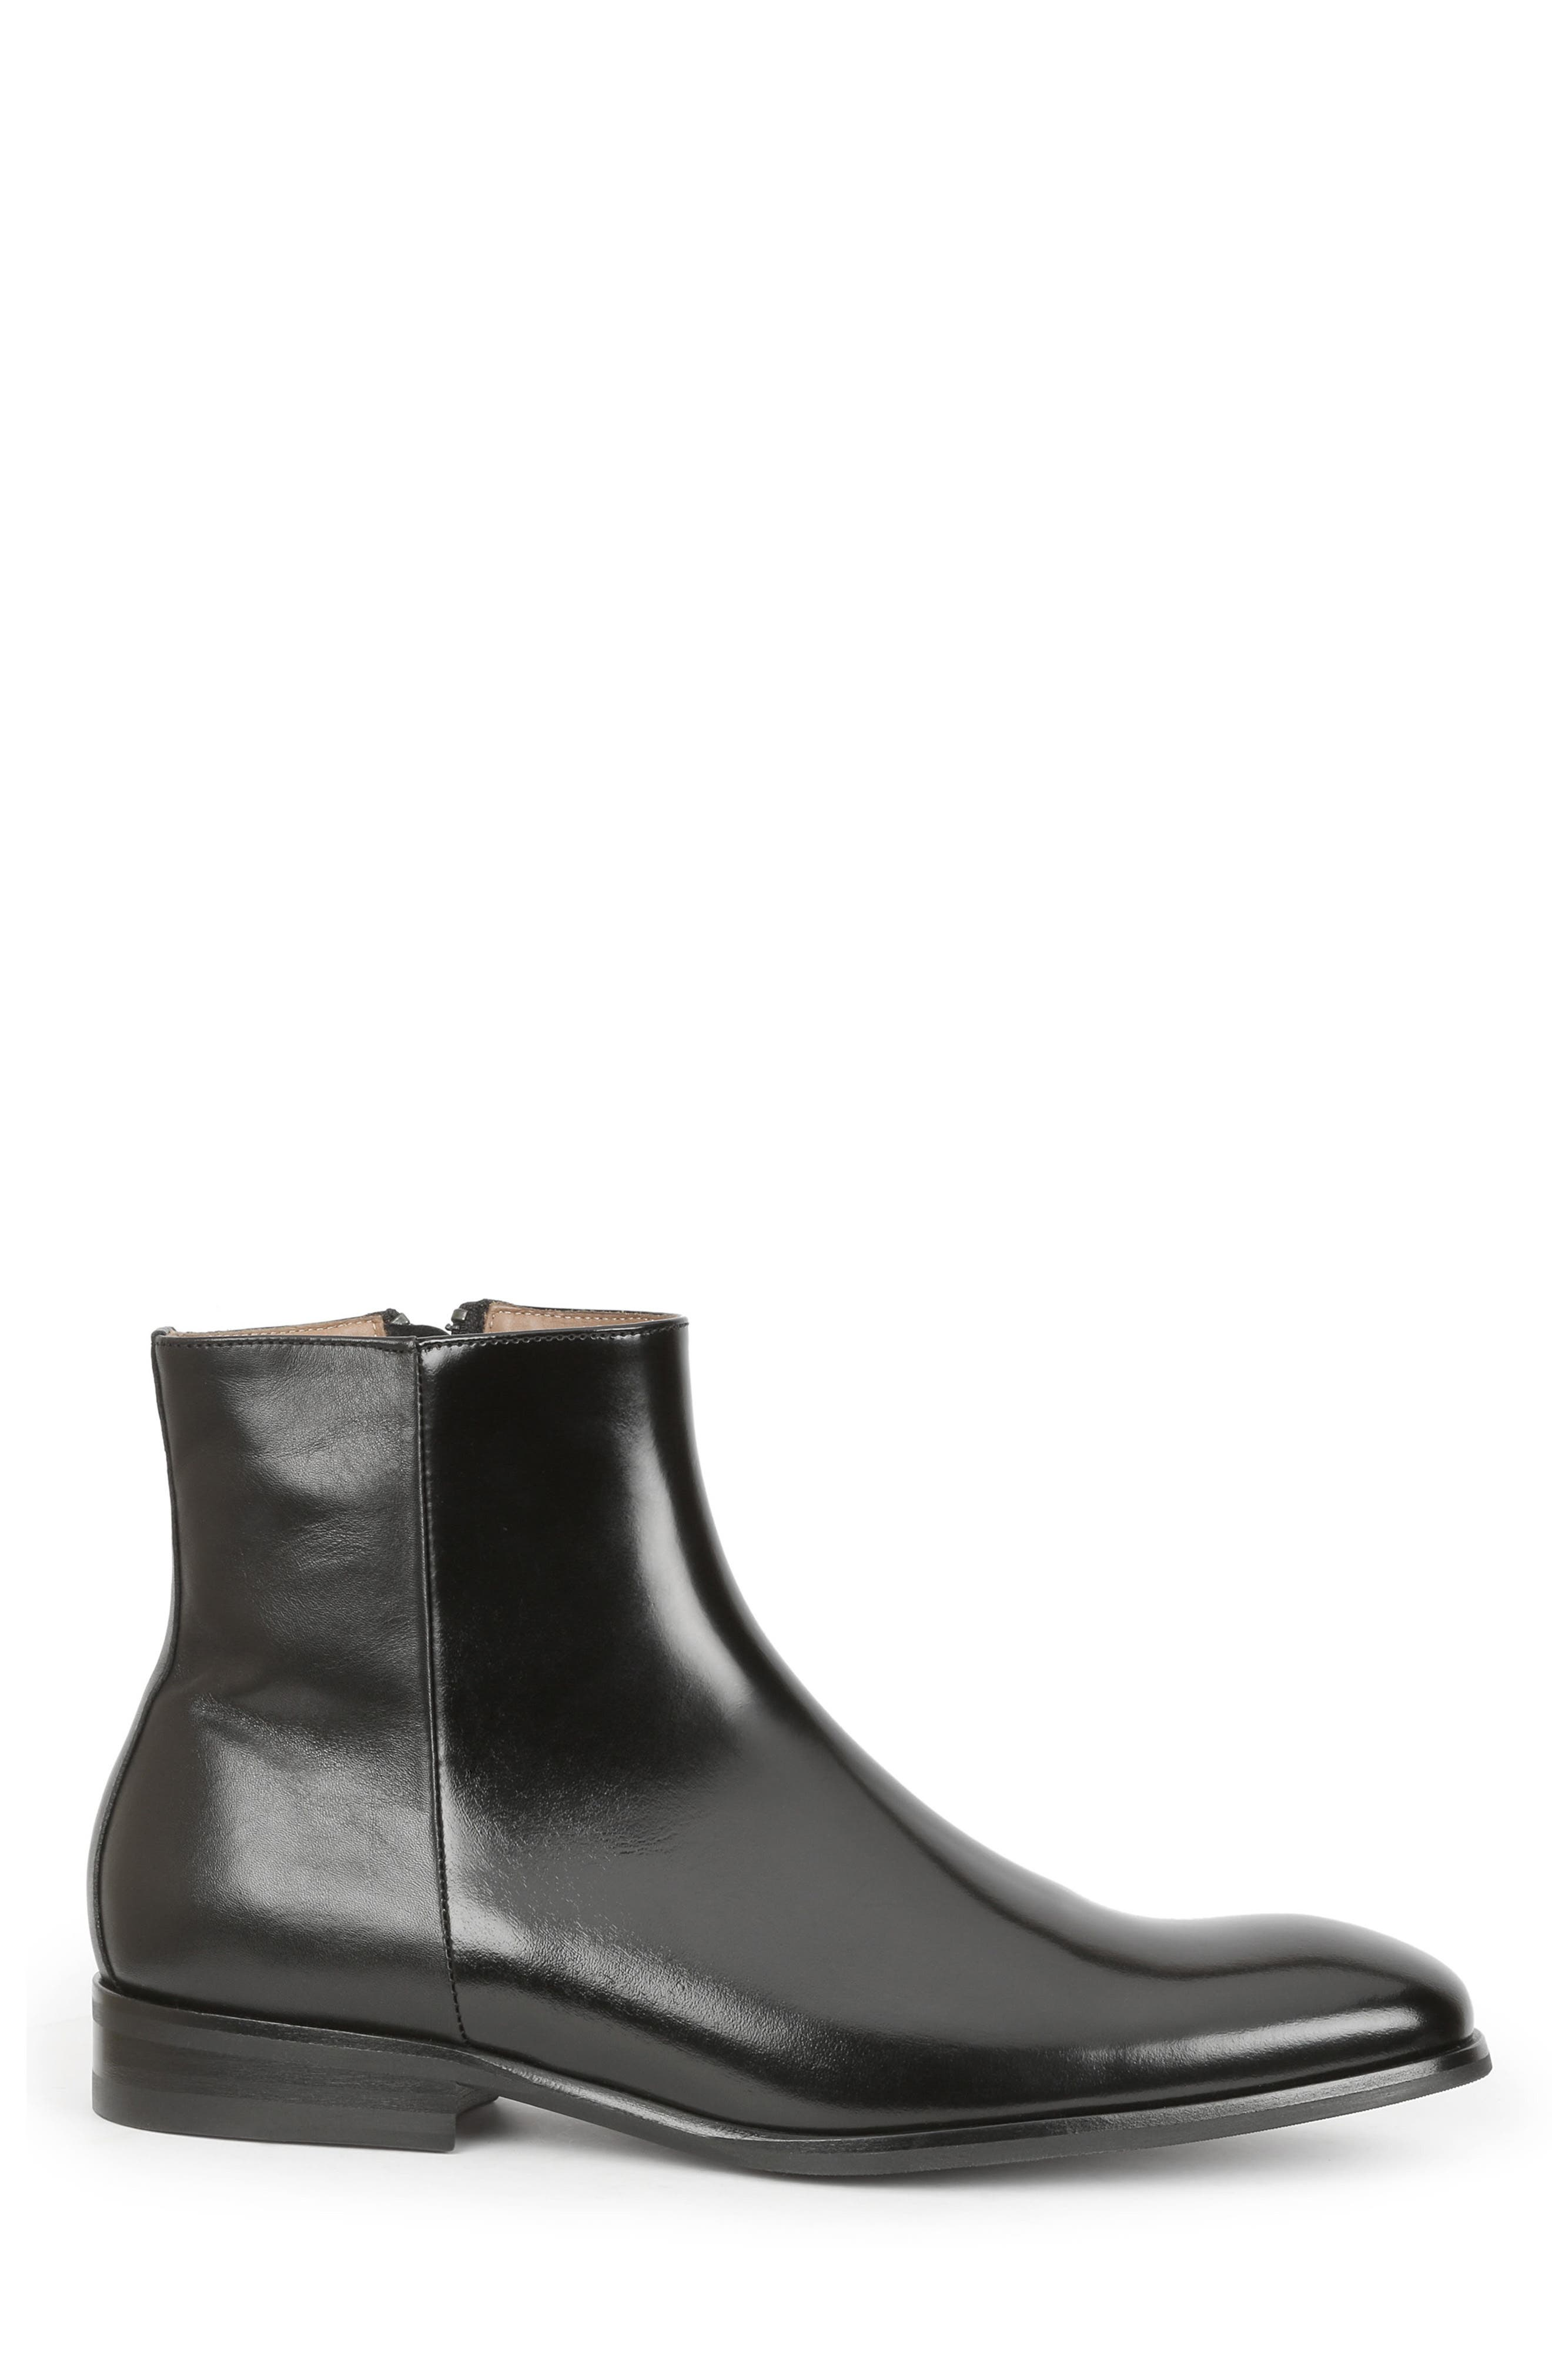 Nuncio Zip Boot,                             Alternate thumbnail 3, color,                             Black Leather